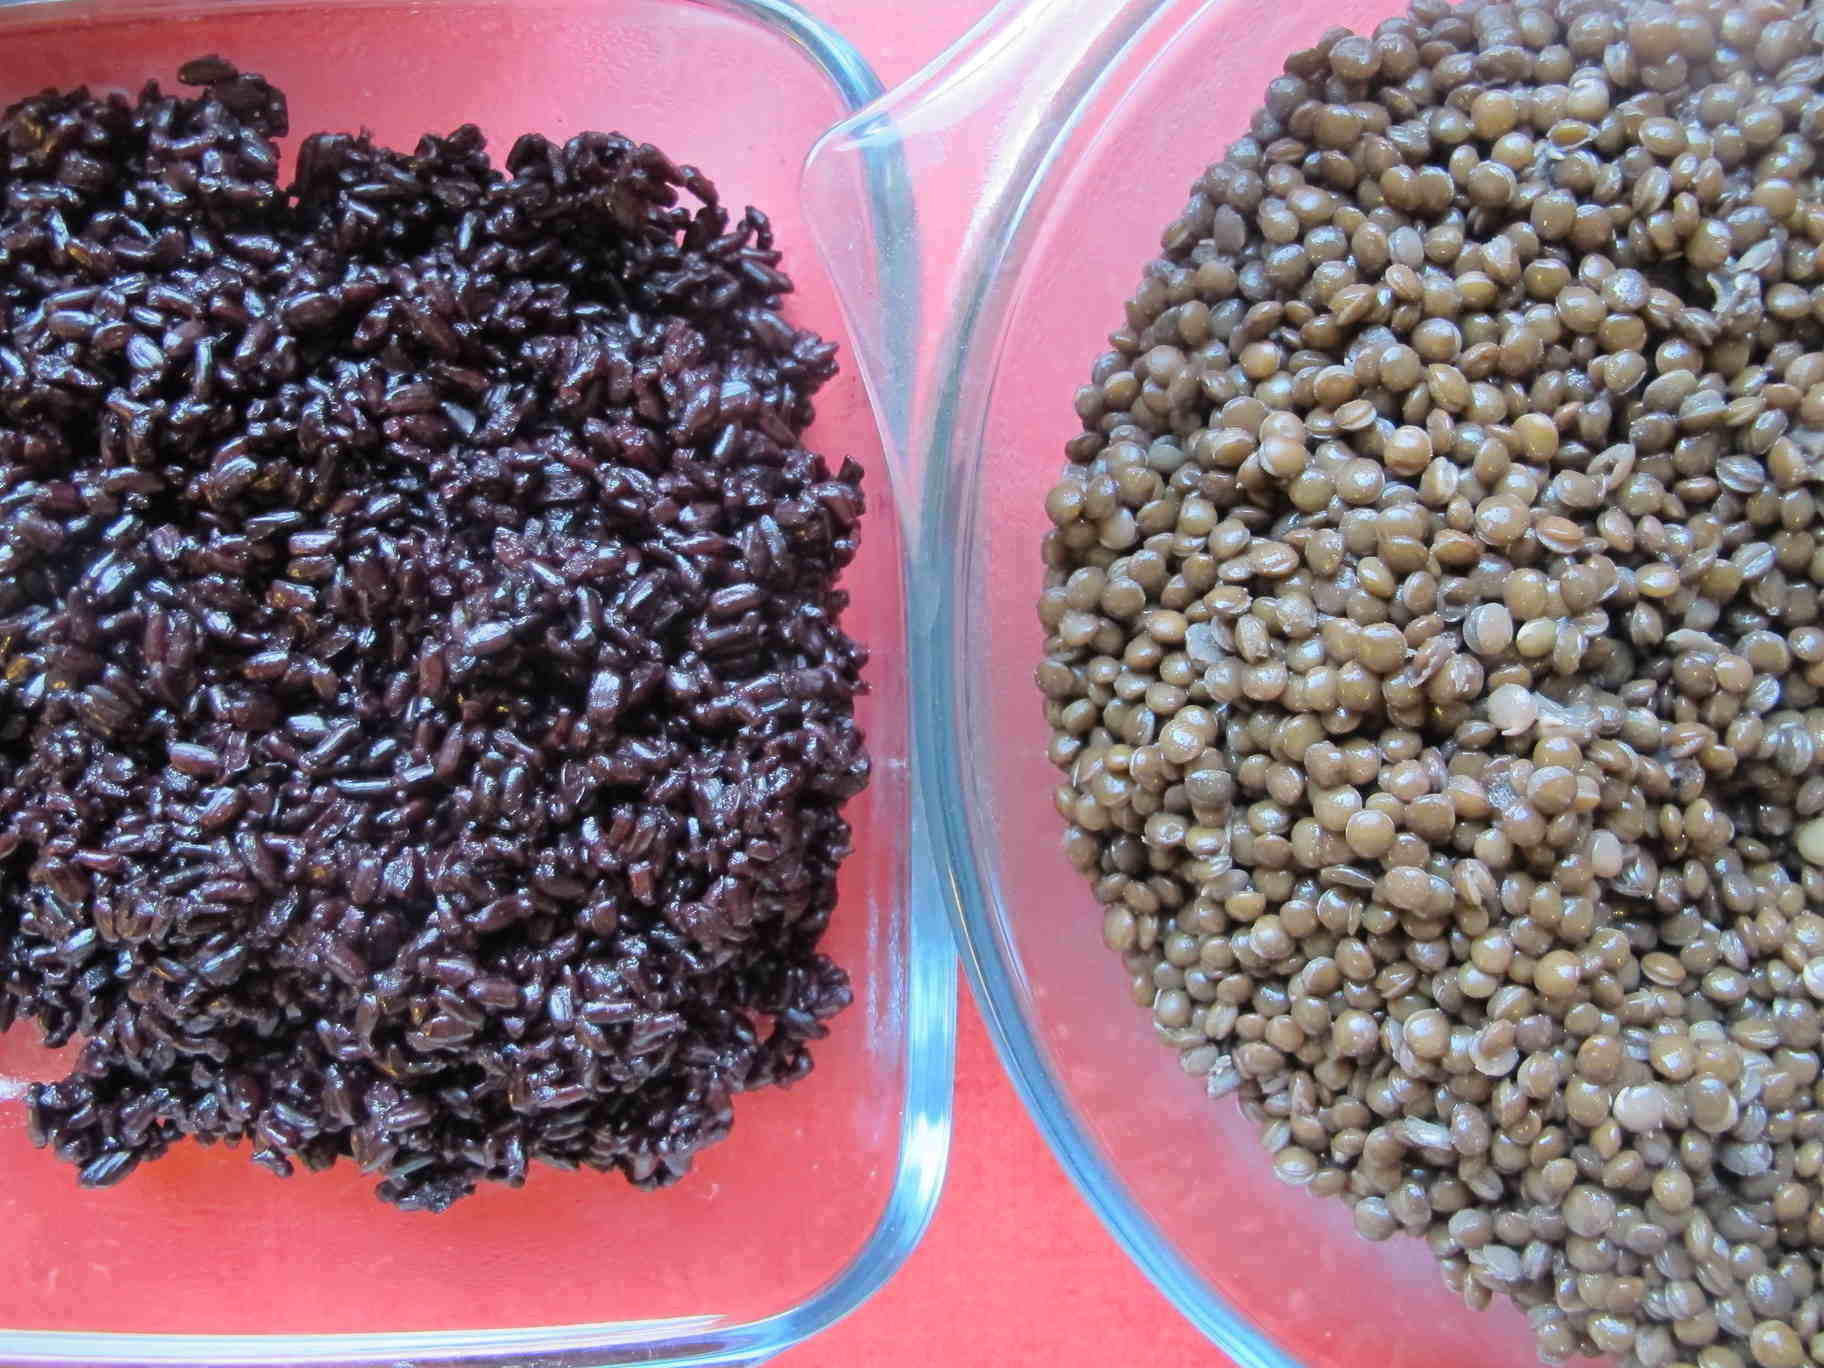 Cooked black rice and beluga lentils